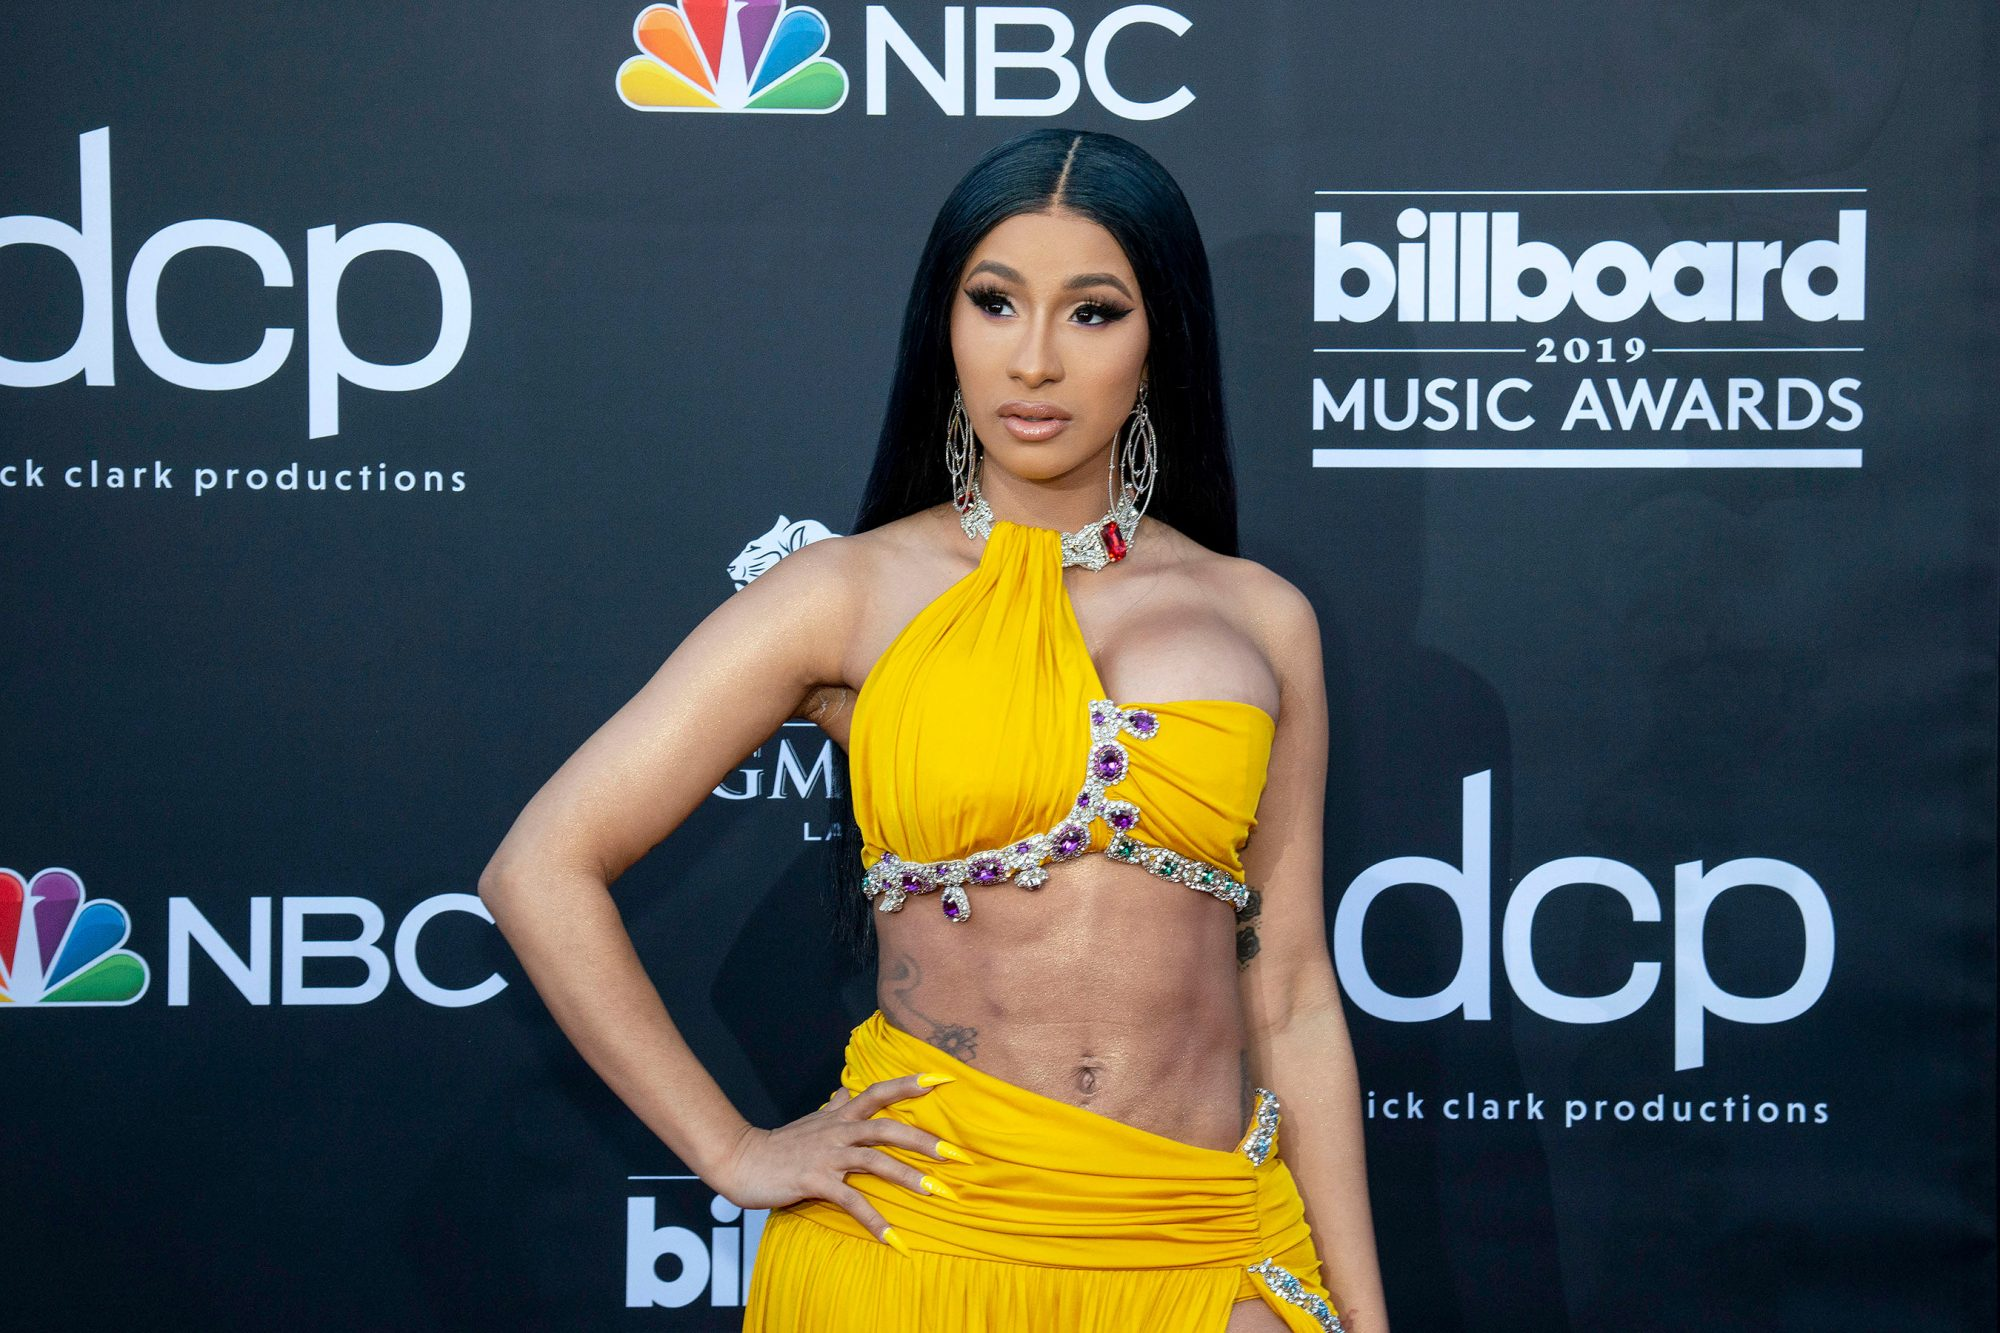 Cardi B Concert Abruptly Called Off Following Unconfirmed Threat